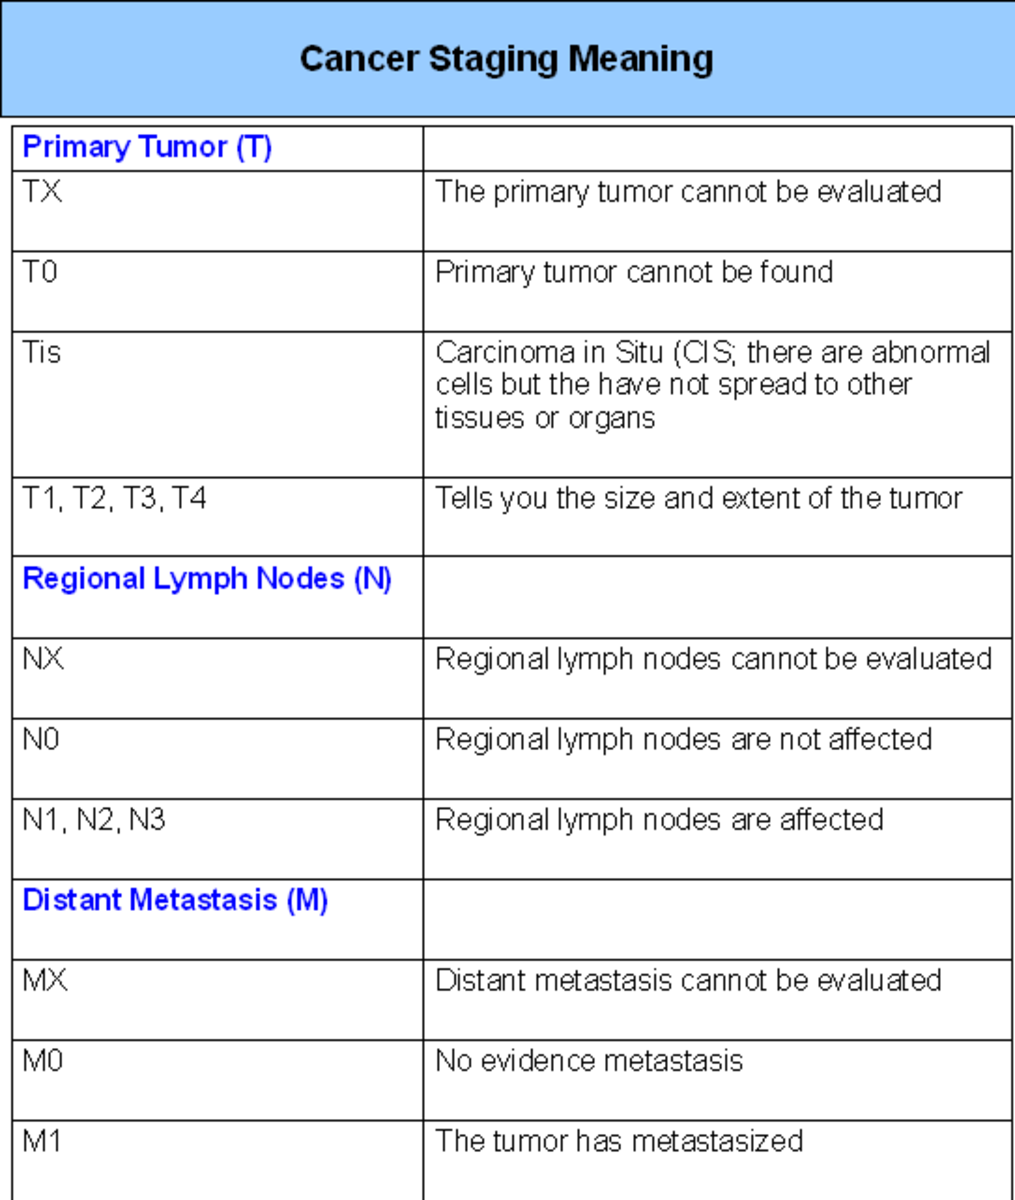 Cancer staging table